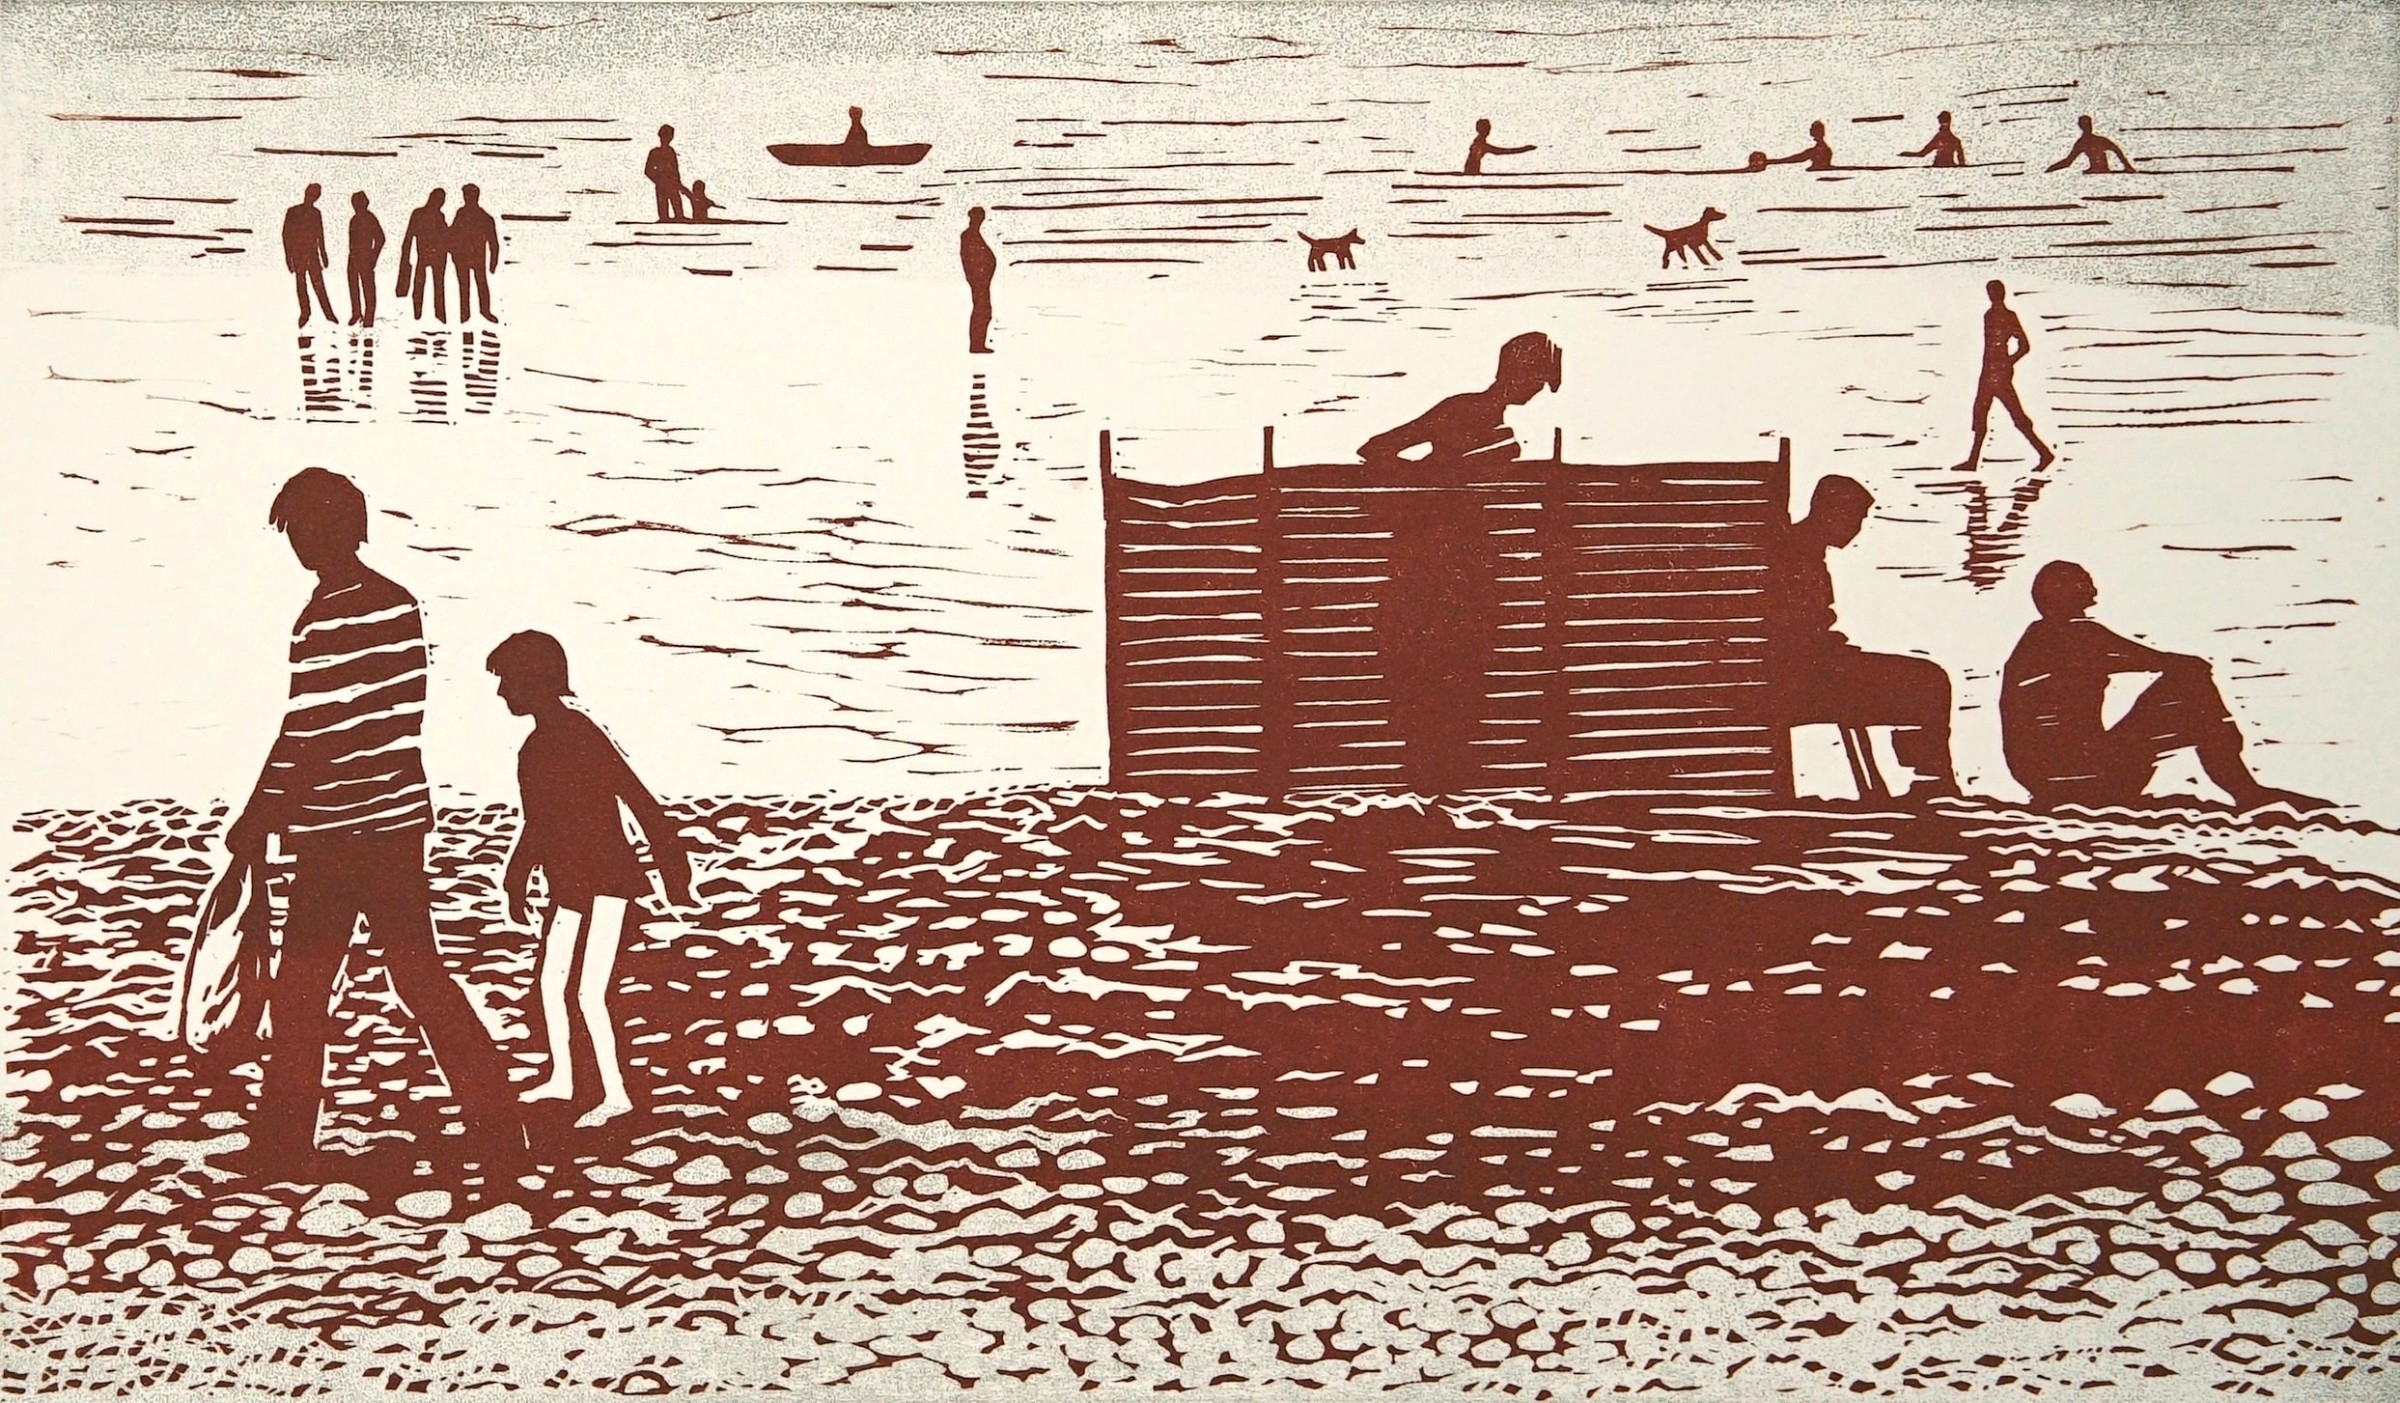 "<span class=""link fancybox-details-link""><a href=""/exhibitions/18/works/image_standalone1004/"">View Detail Page</a></span><p>Sally Hill</p><p>Bathers</p><p>linocut</p><p>48 x 37cm</p><p>£185 framed</p><p>£140 unframed</p>"